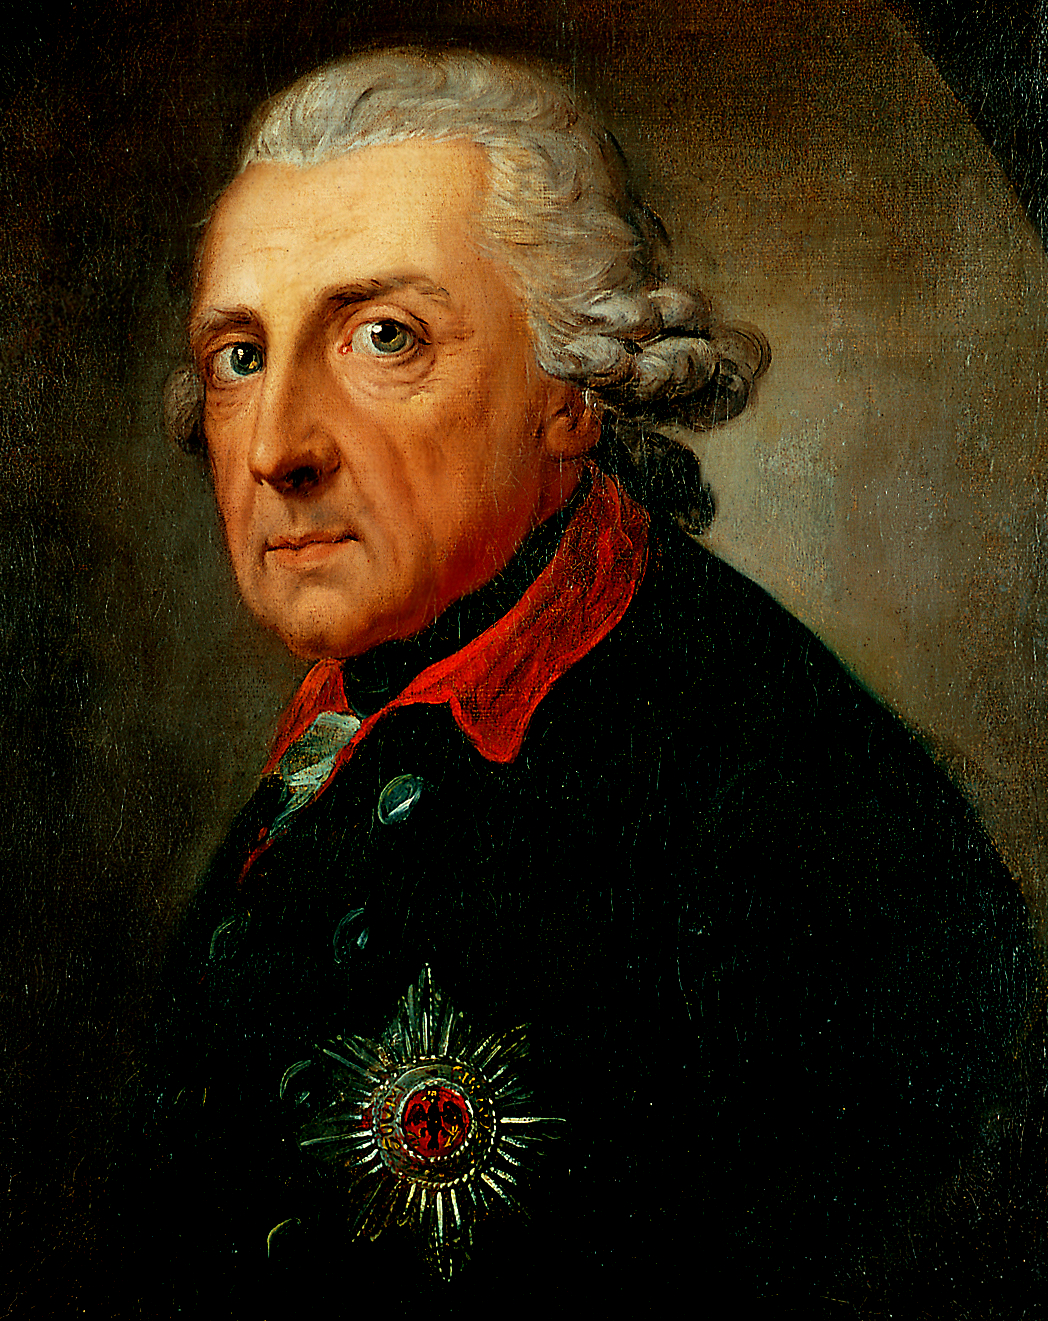 Frederick II (the Great), King of Prussia, aged 68